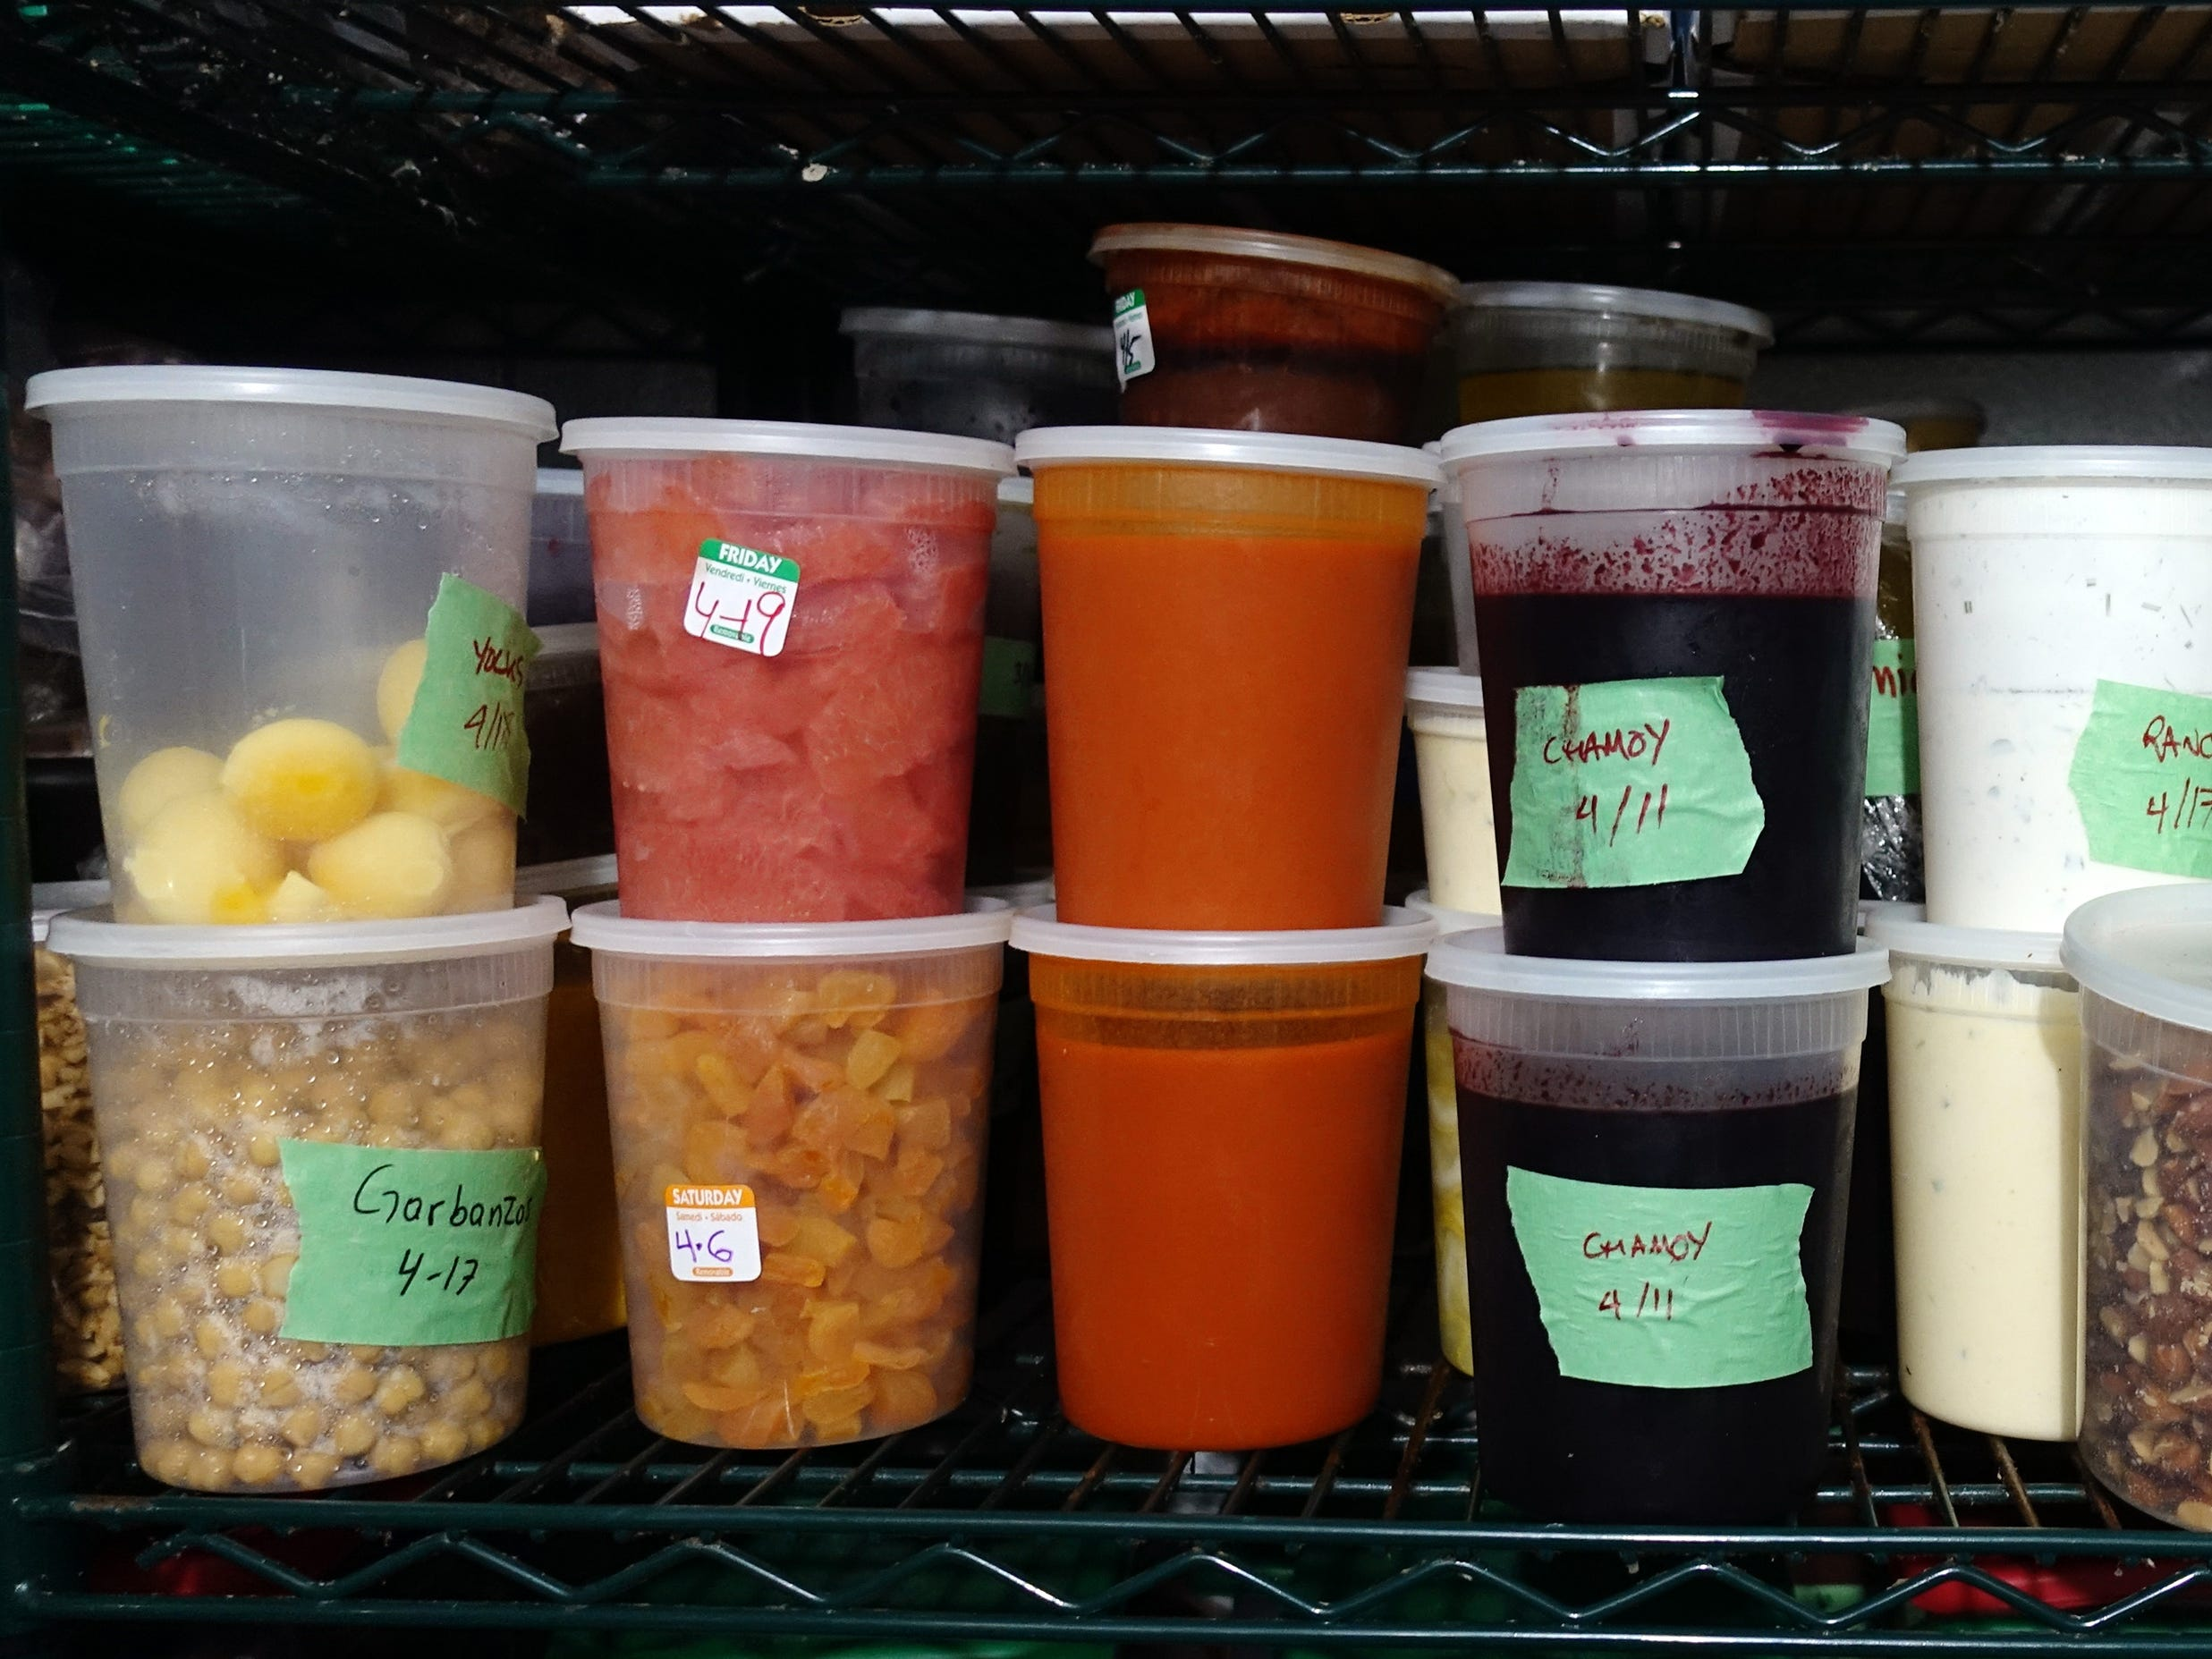 Containers filled with vegetables, pickles and sauces line the shelves of the walk-in at FnB in Scottsdale.